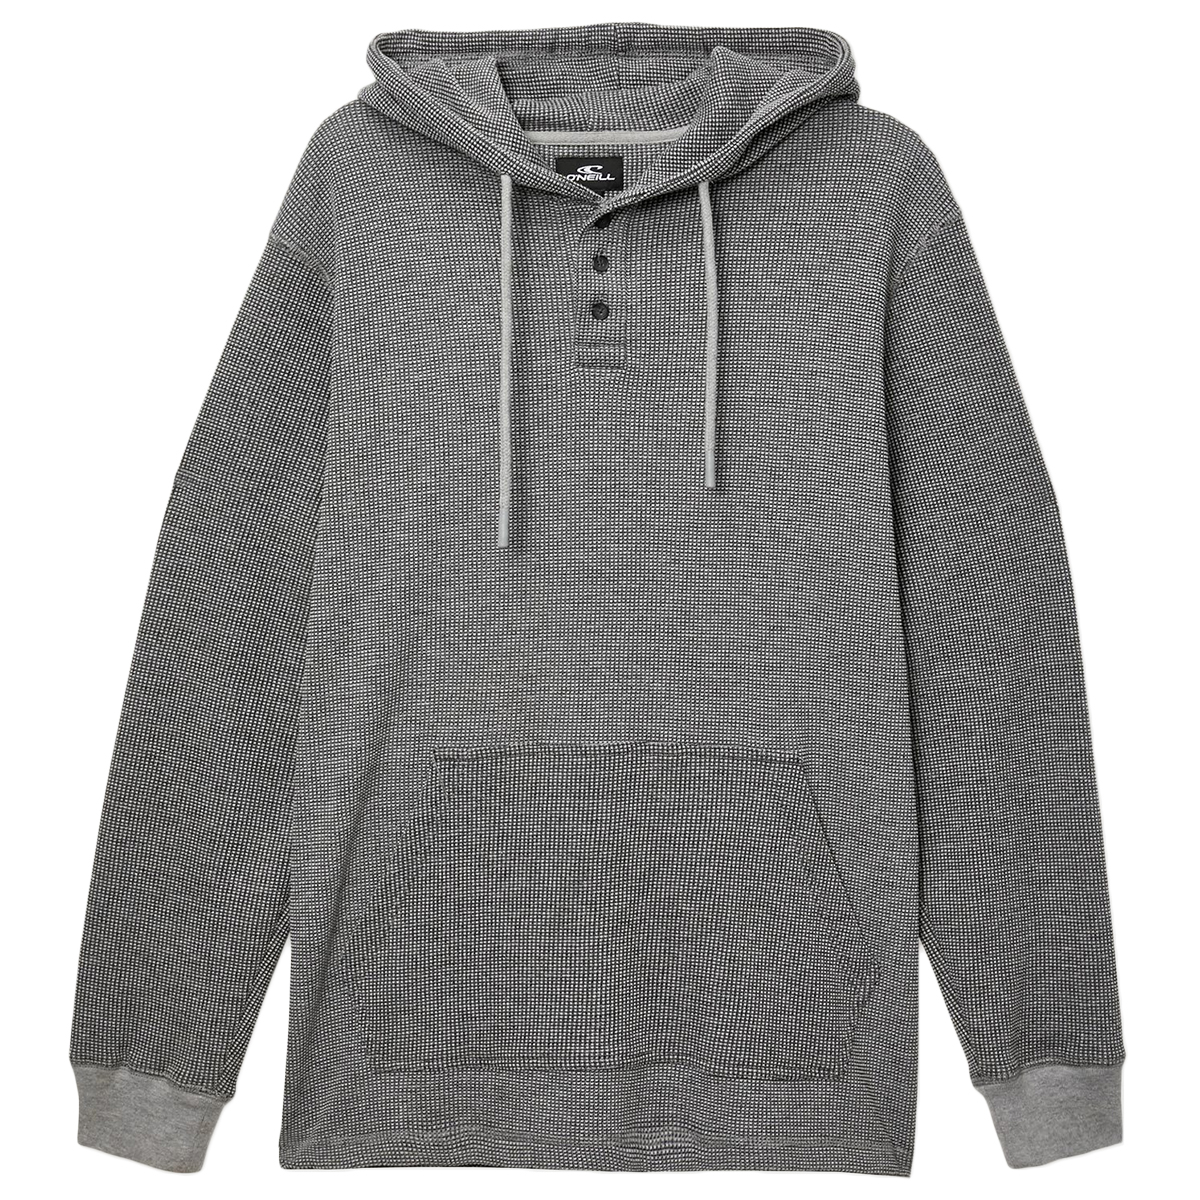 O'neill Men's Olympia Pullover Hoodie - Black, L